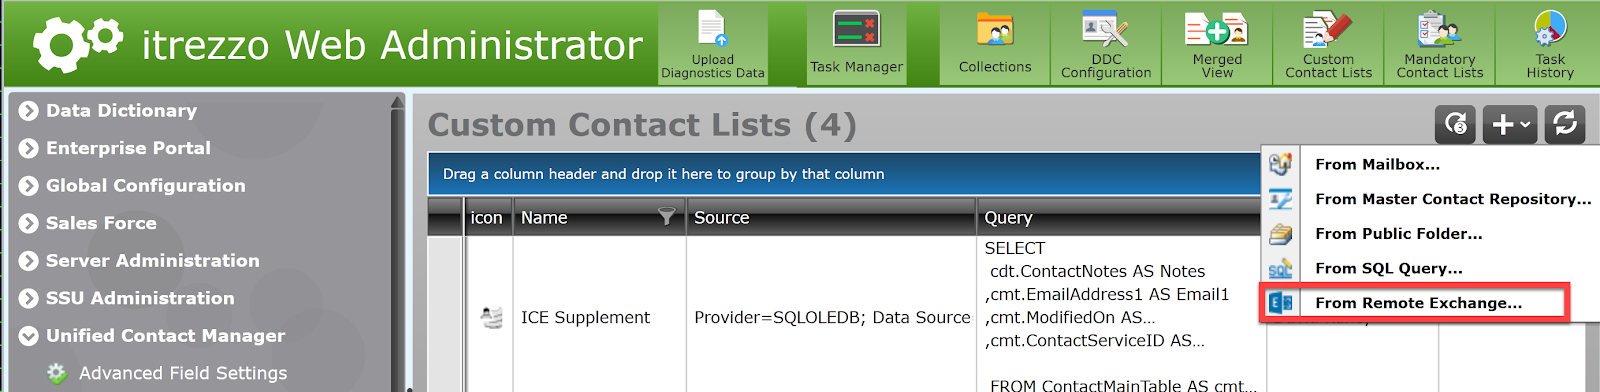 choosing a contact source for an Outlook contact folder